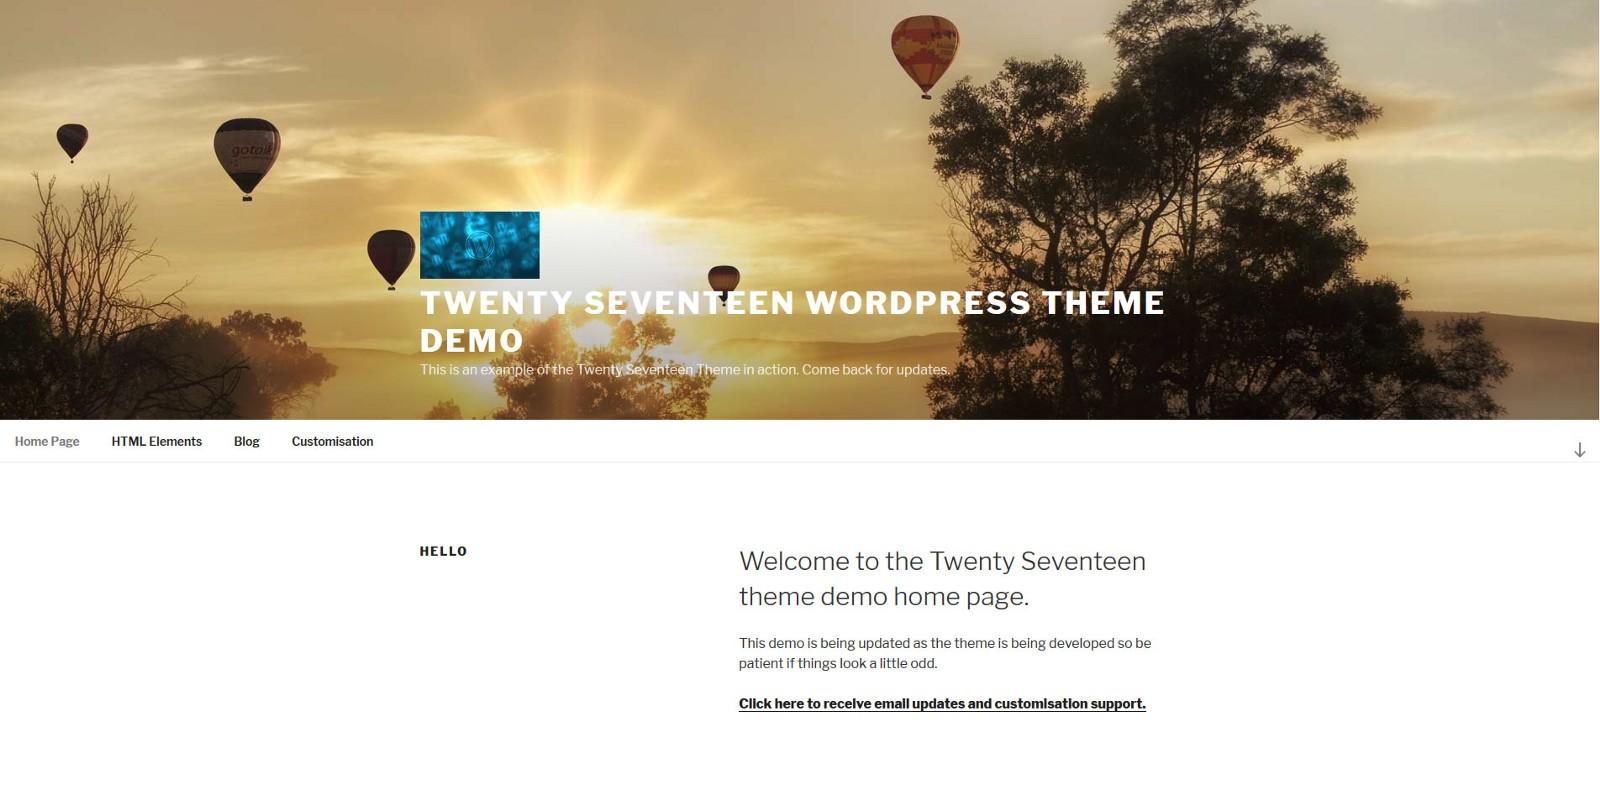 How To Make The Menu Fit The Full Width Of The Screen In Twenty Seventeen - 웹